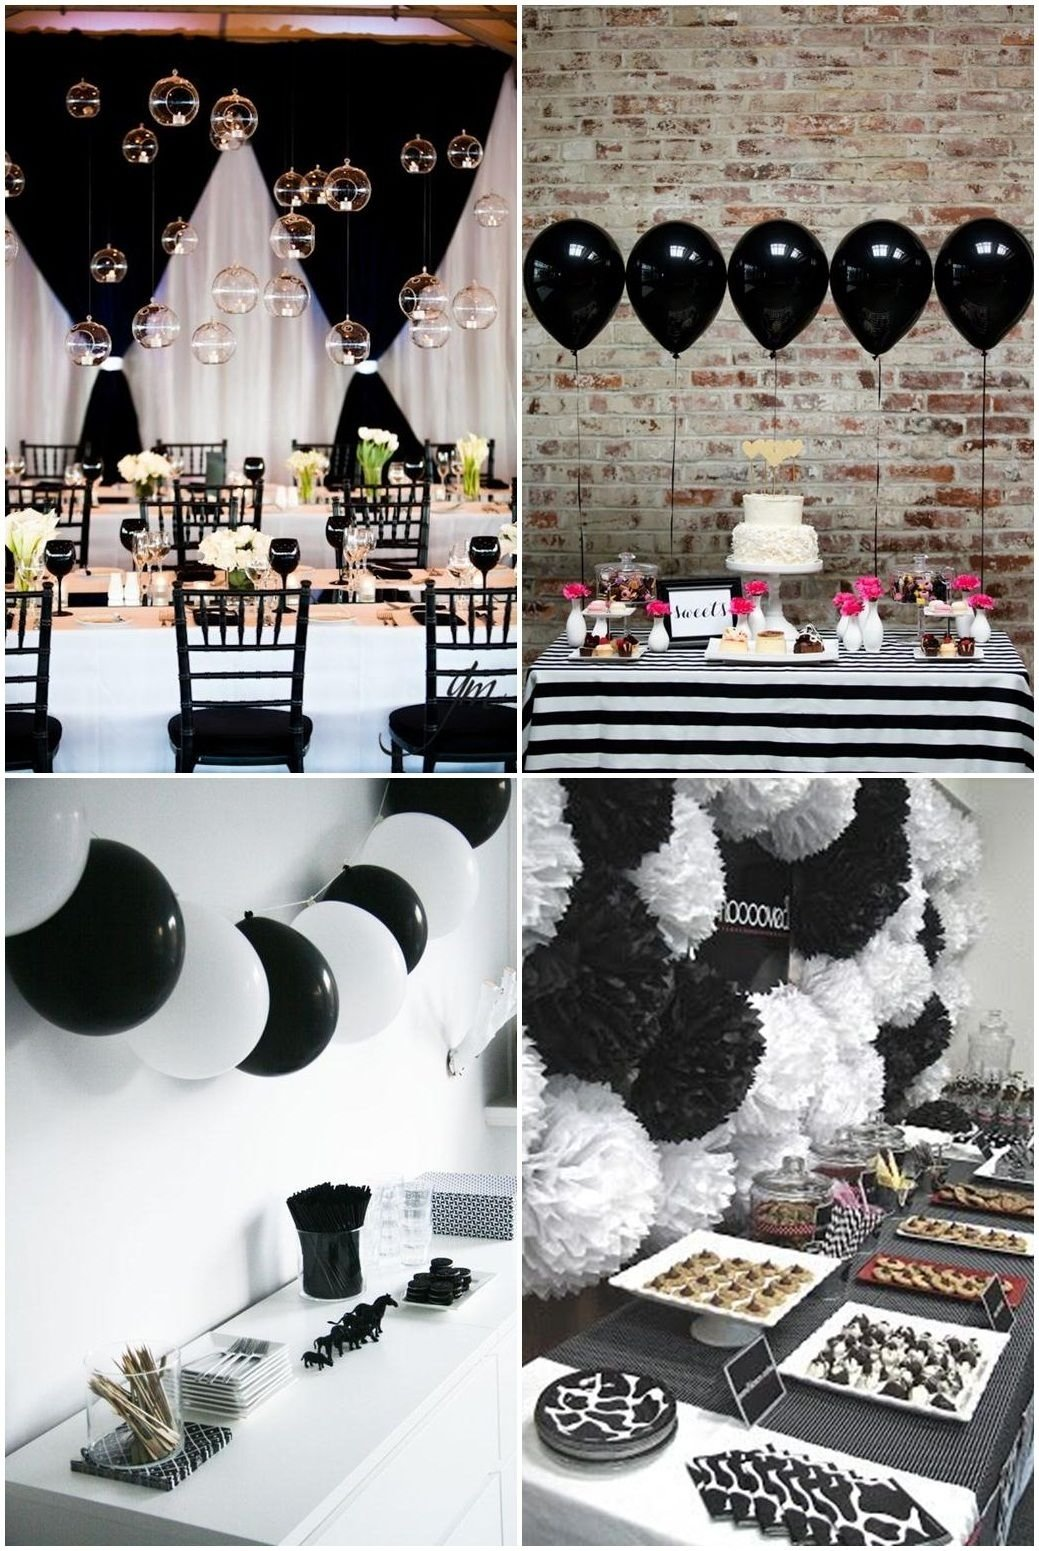 10 Wonderful Black And White Photo Ideas simple black and white party ideas pinteres 5 2021